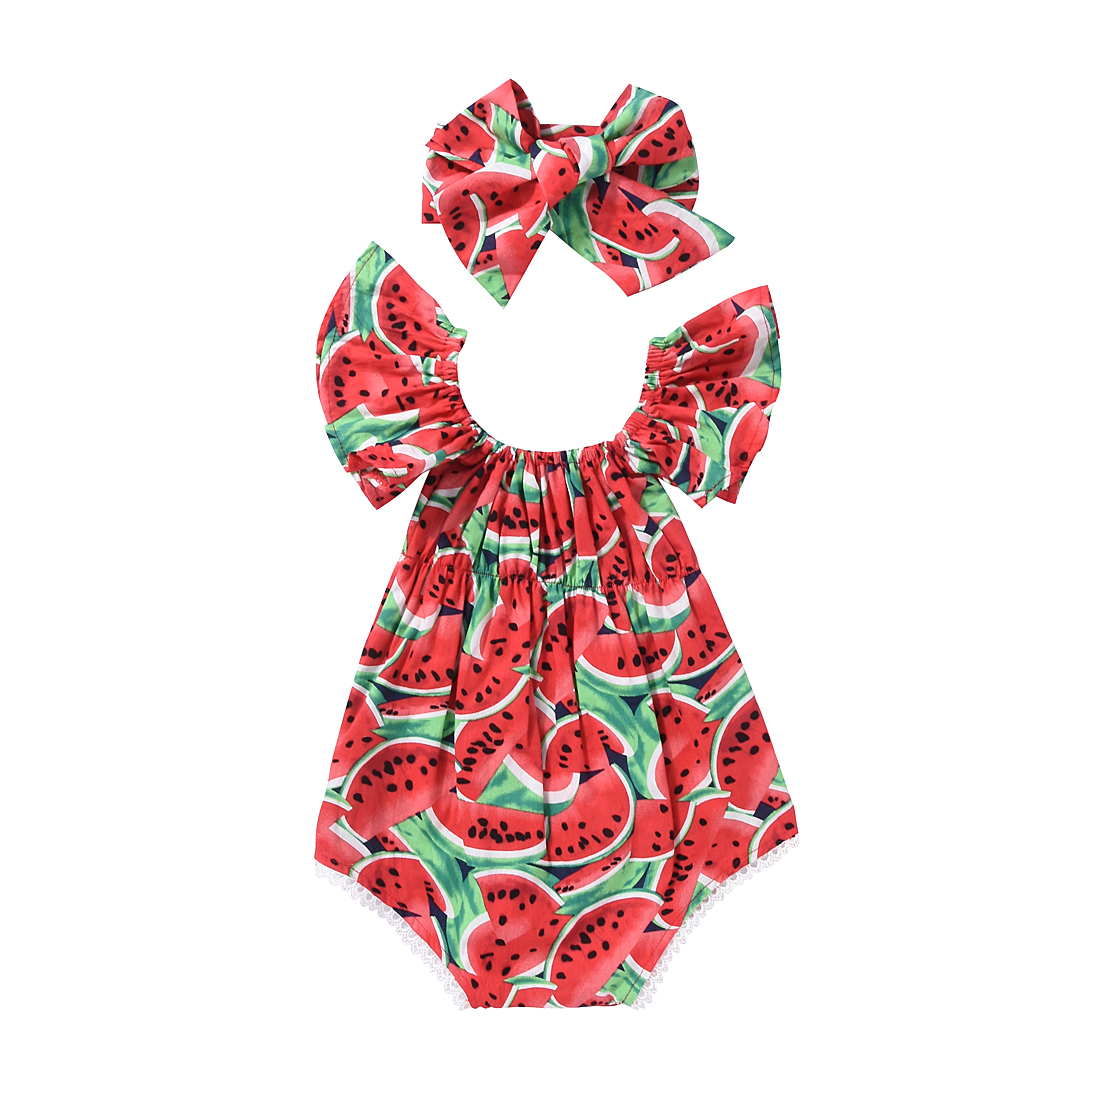 2pcs!!Newborn Baby Girls Clothing Watermelon Clothes Romper Jumpsuit+Headband Outfits Playsuit 2017 floral newborn baby girl clothes ruffles romper baby bodysuit headband 2pcs outfits sunsuit children set